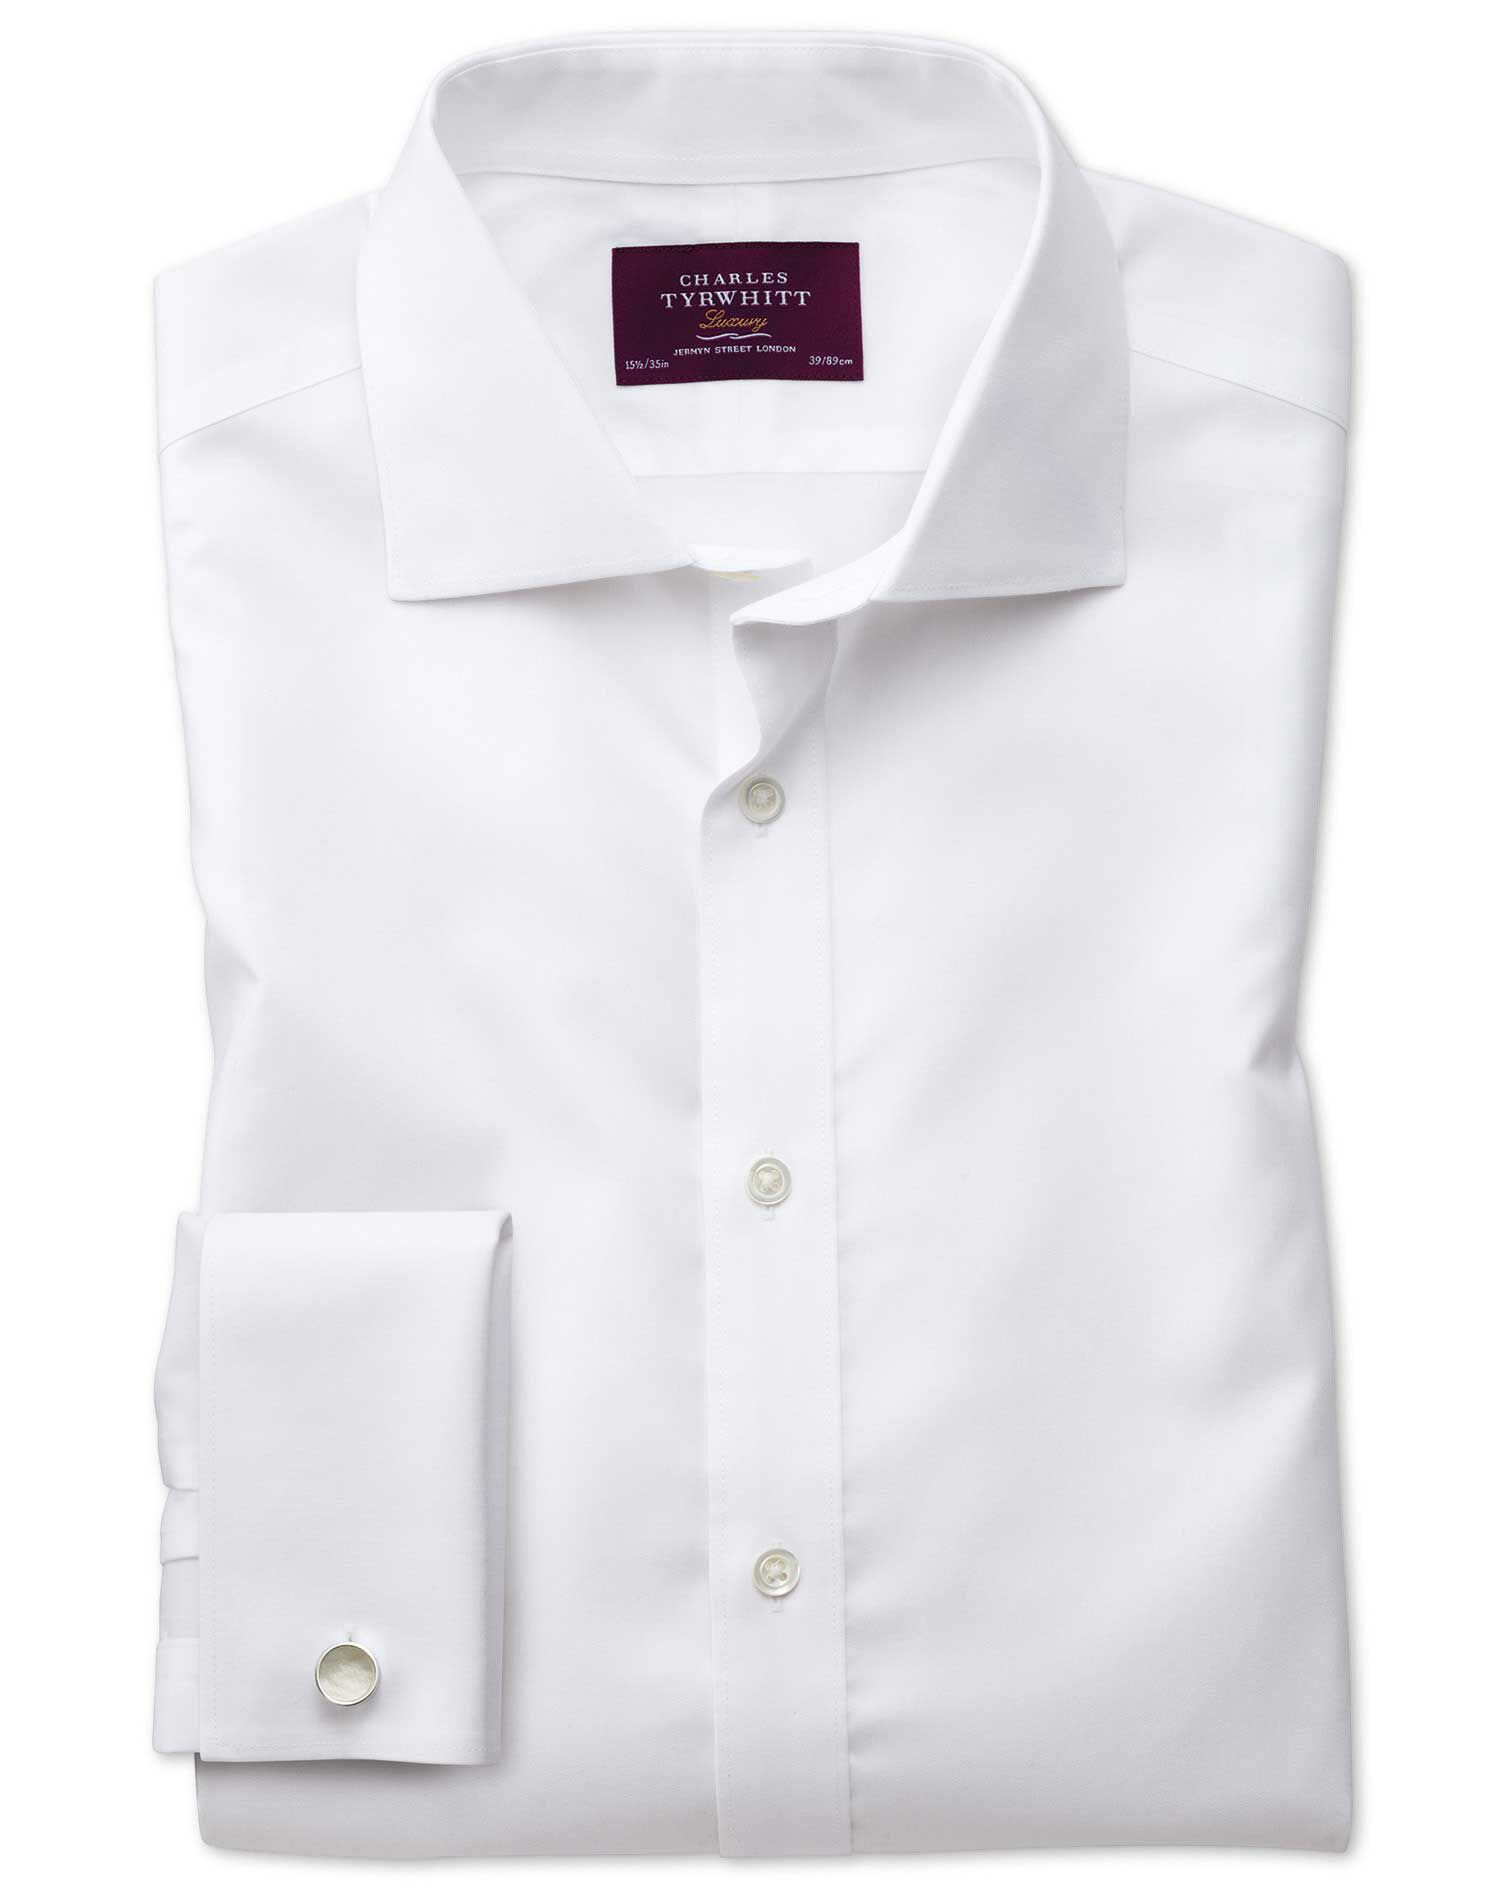 Extra Slim Fit Semi-Cutaway Non-Iron Luxury White Cotton Formal Shirt Double Cuff Size 16.5/33 by Ch